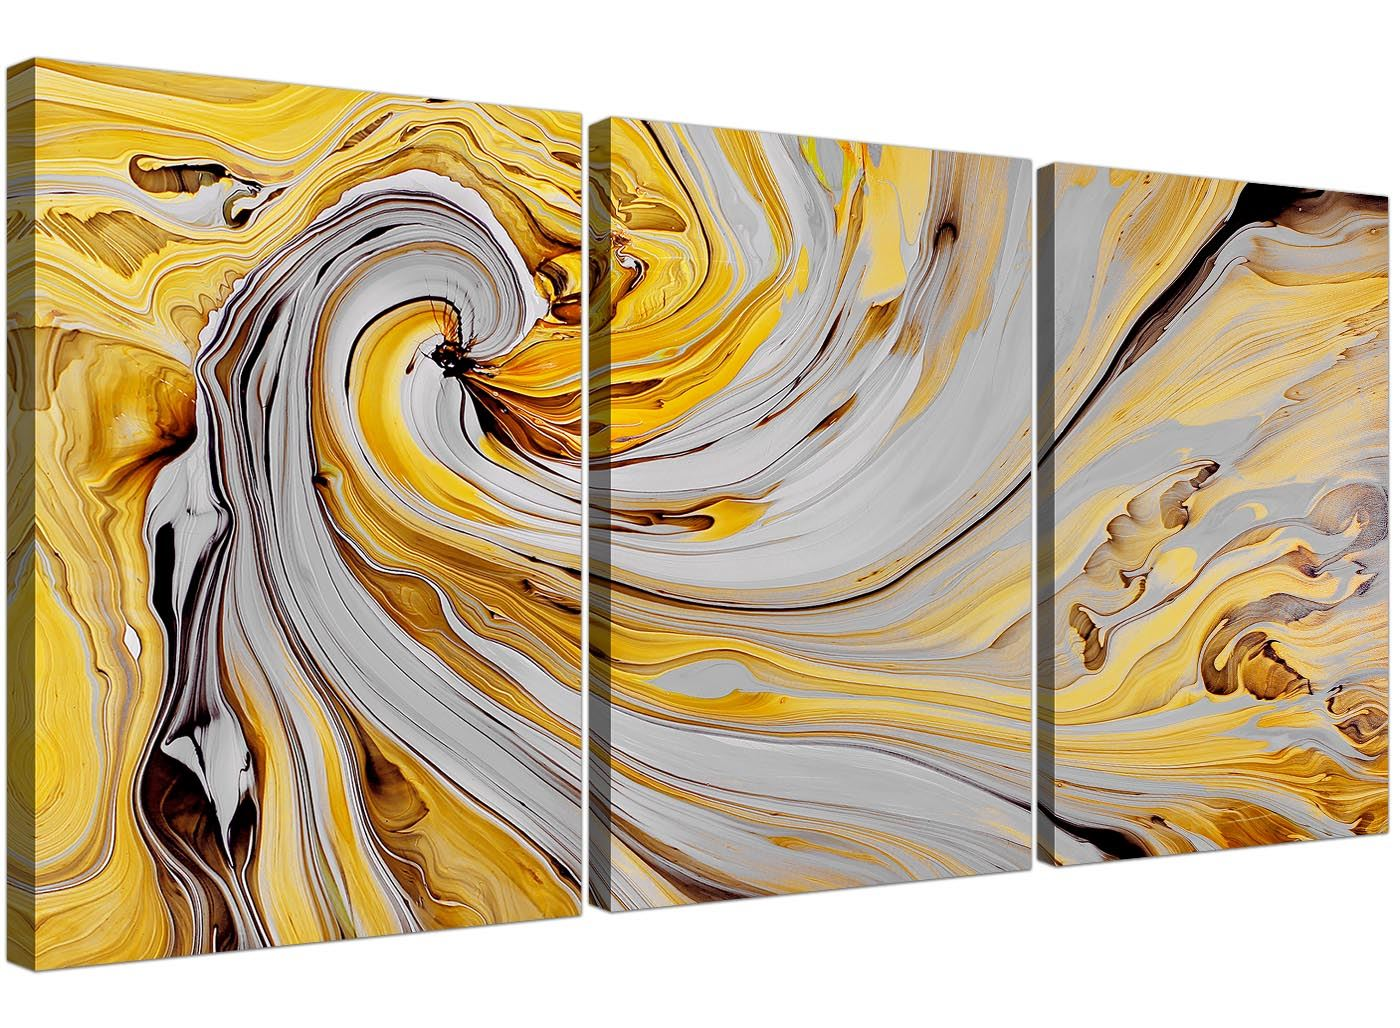 mustard yellow and grey spiral swirl abstract canvas multi 3 piece